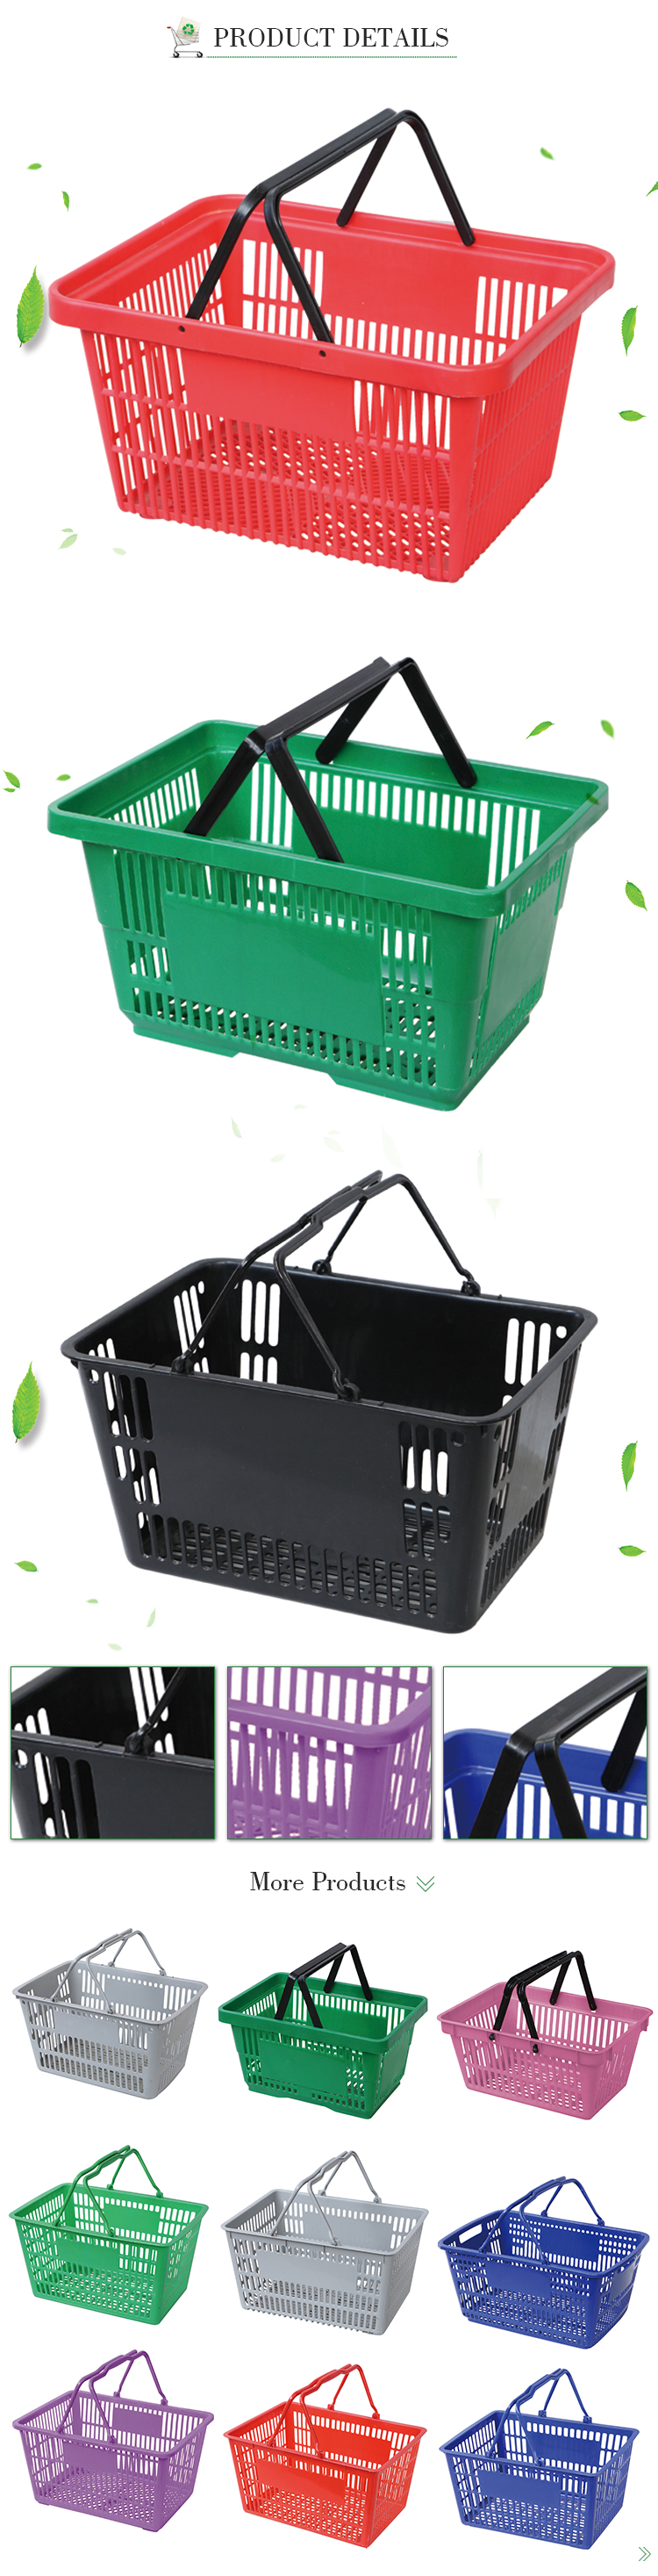 Double Handles Plastic Shopping Vegetable Baskets Wholesale